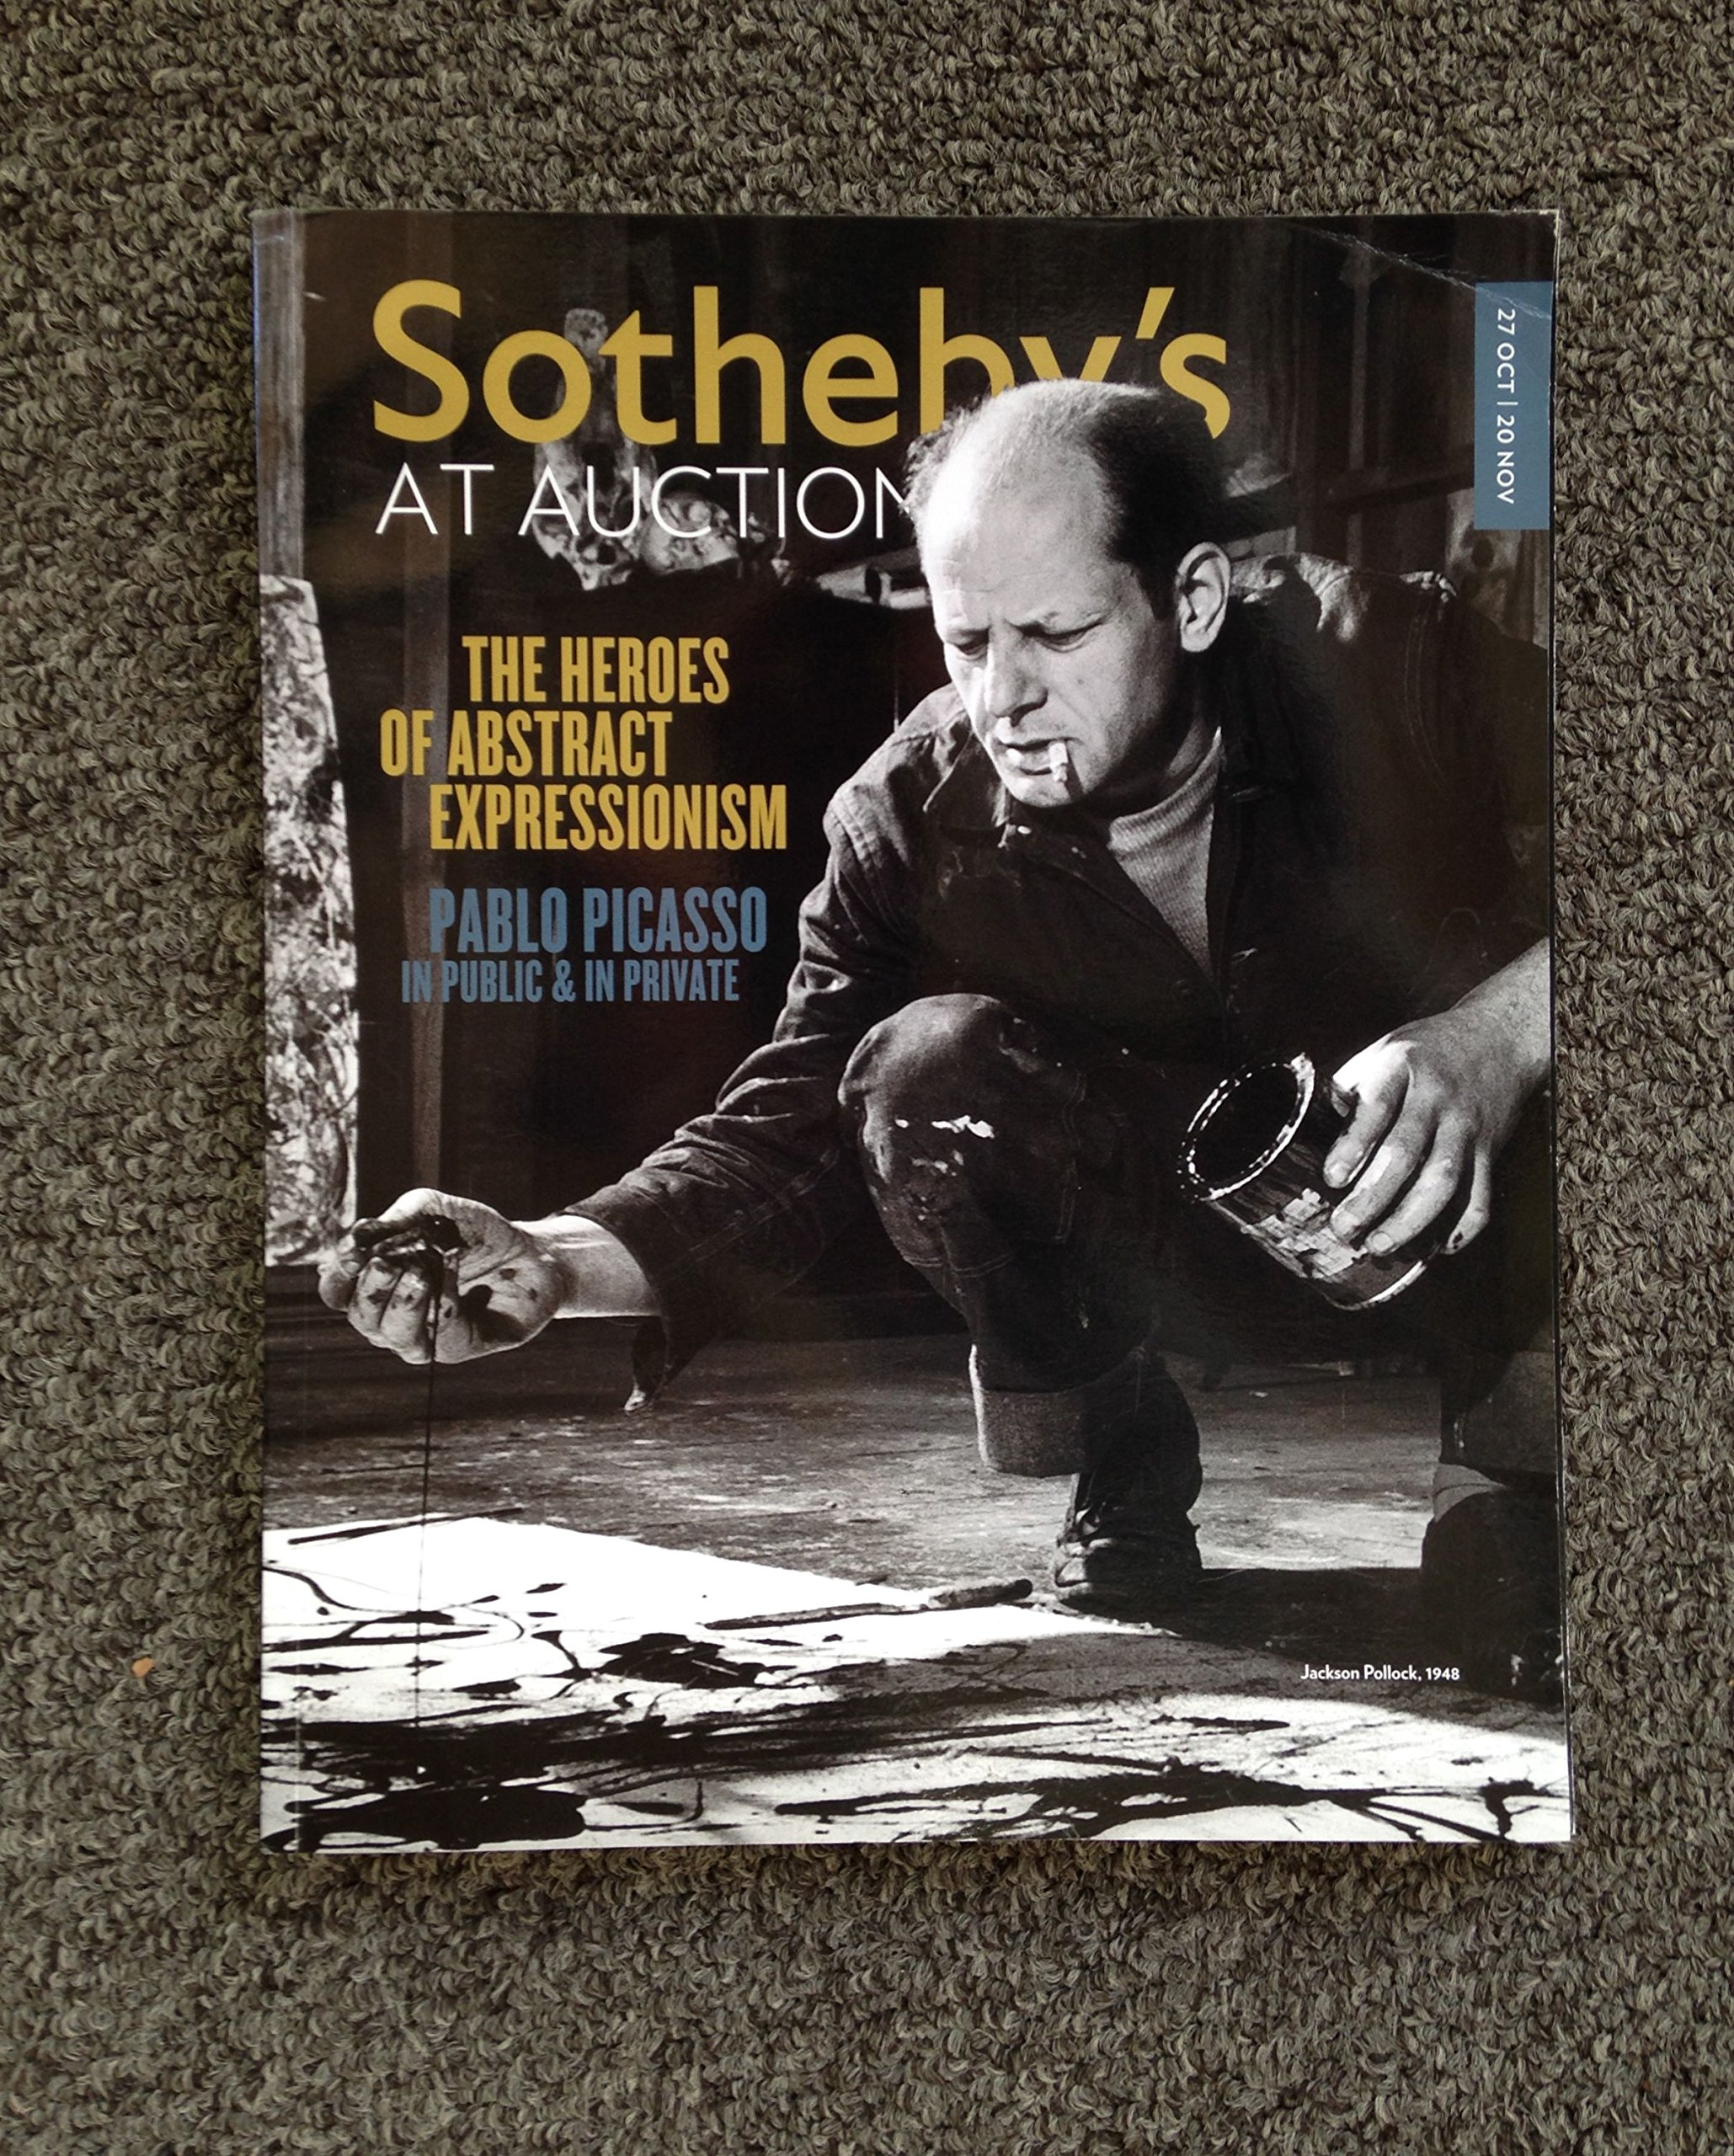 Download Sotheby's At Auction: Worldwide Highlights, Volume 3 Issue 7, 27 October-20 November 2012 pdf